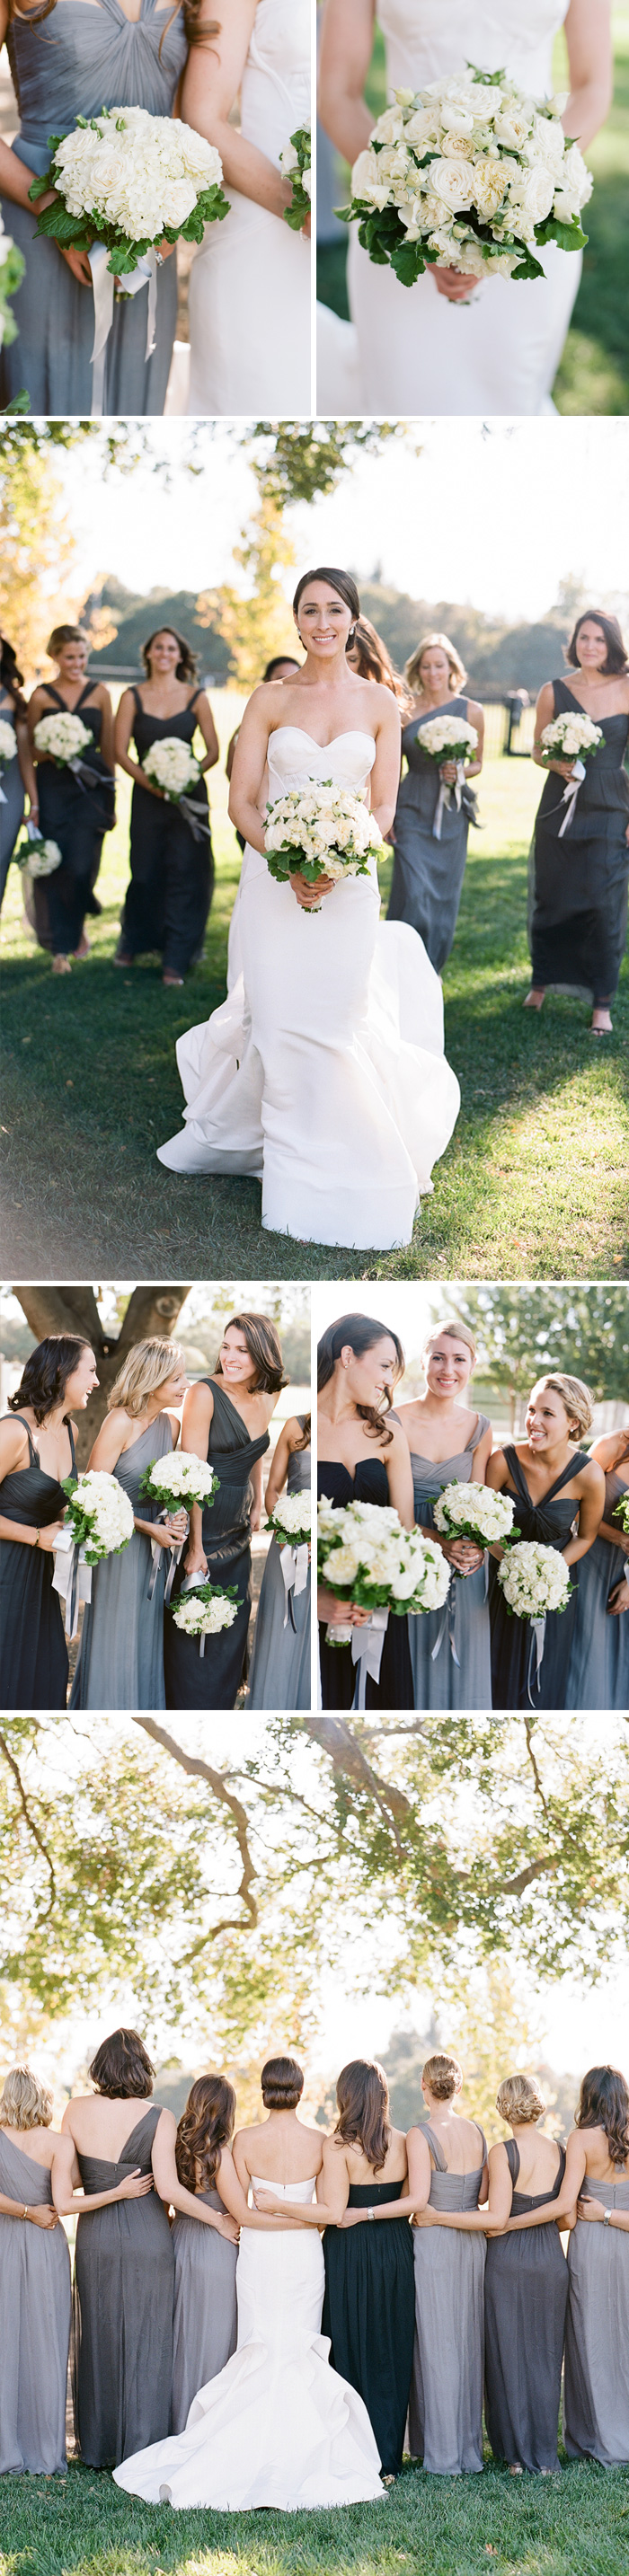 The bride and bridesmaids show off their classic white bouquets and share laughs together before the ceremony during a bridal party shoot with Sylvie Gil